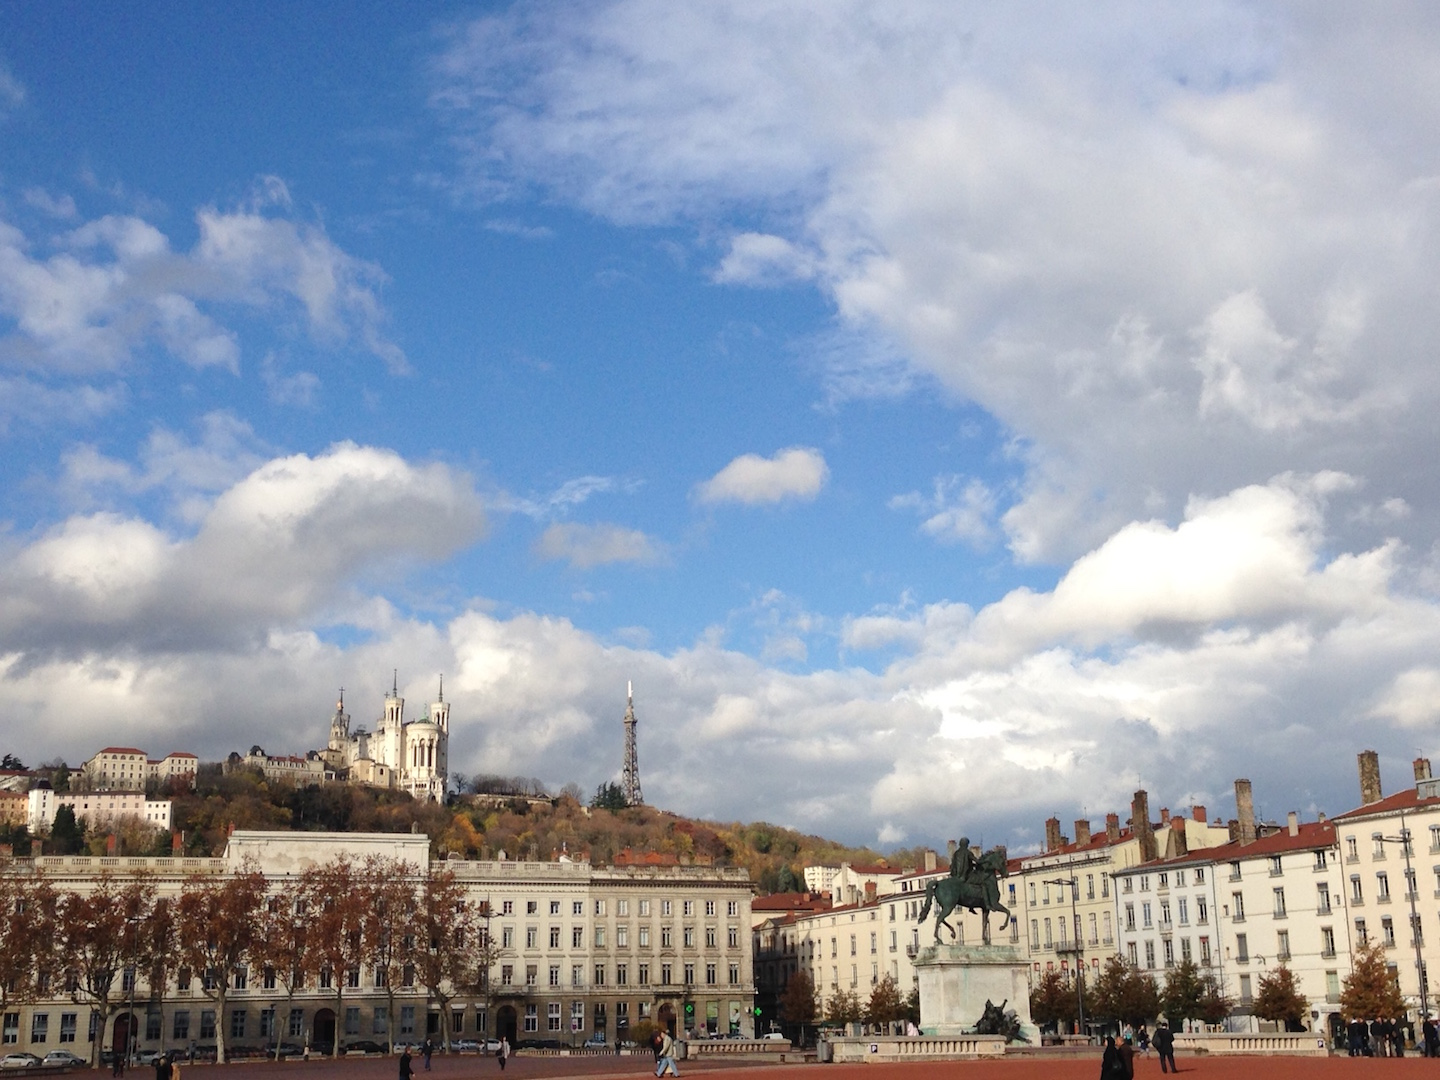 lyon - place bellecour